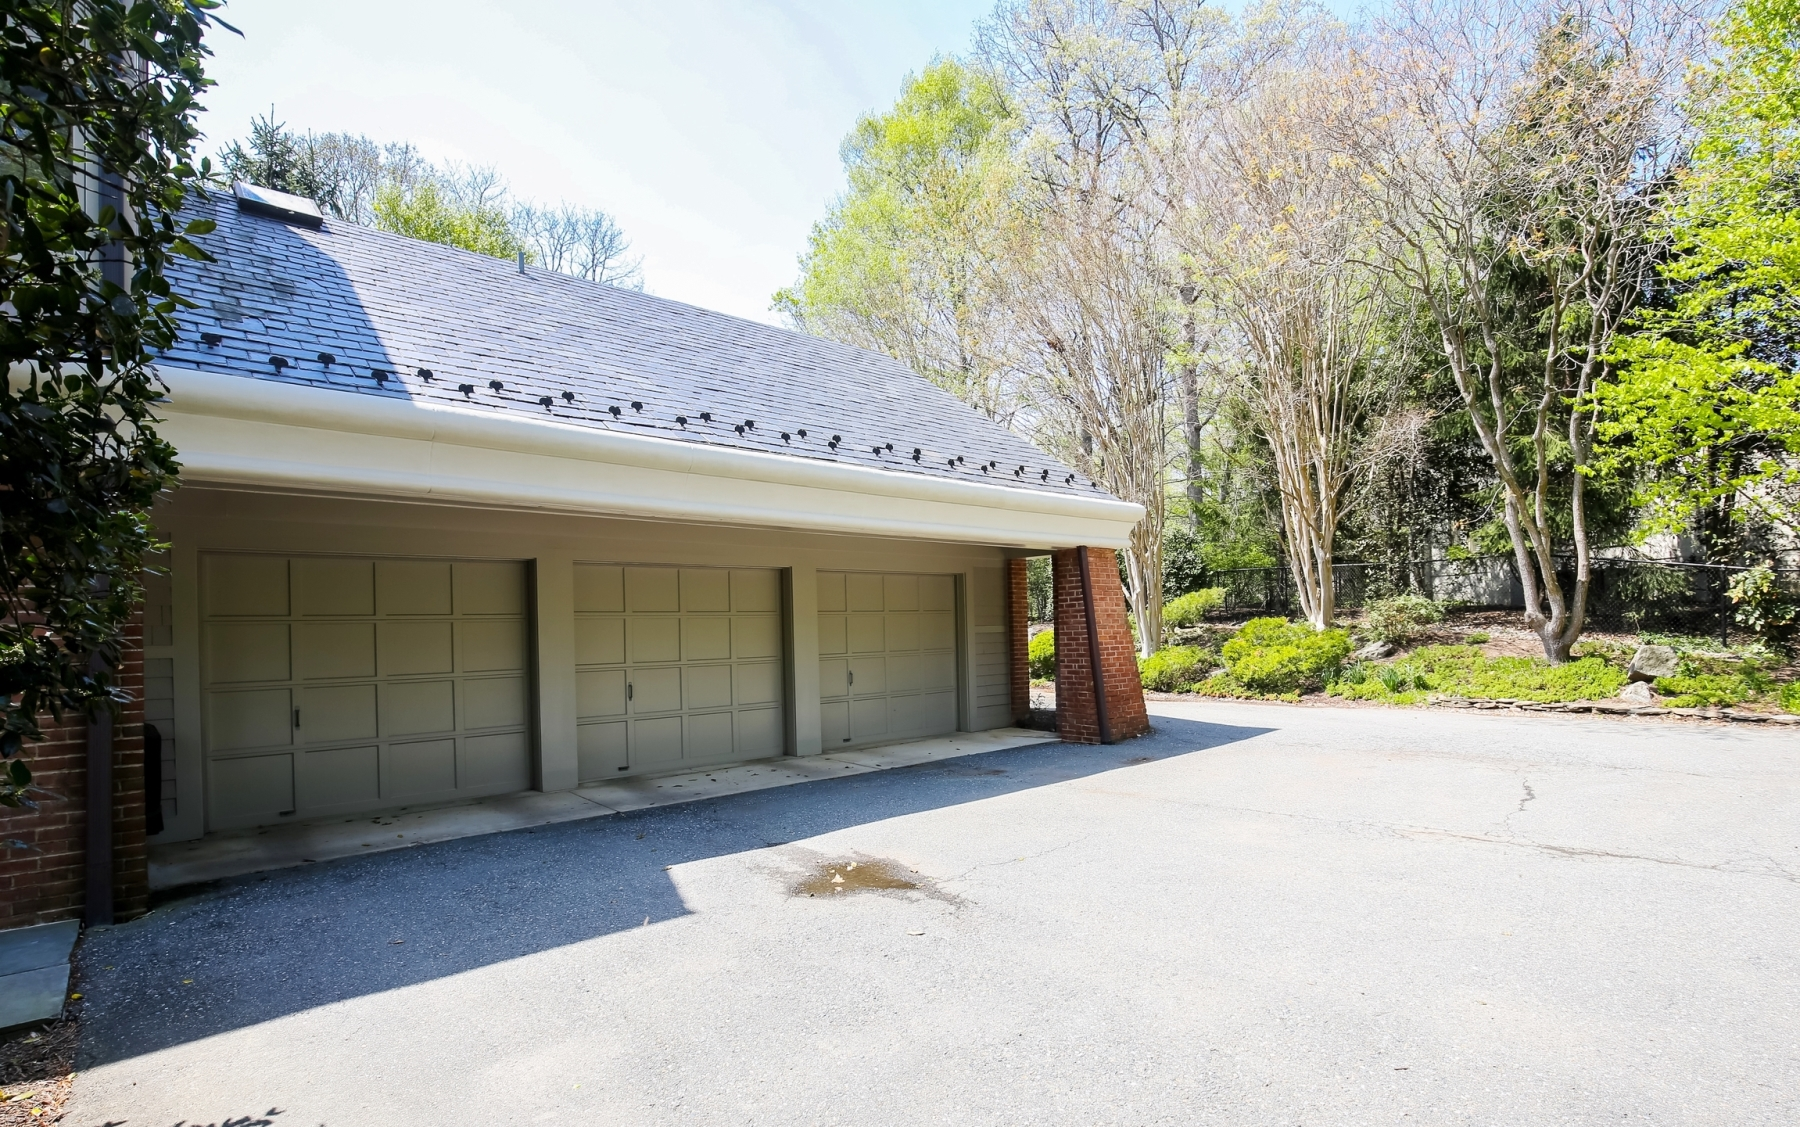 Additional photo for property listing at Camotop 10105 Iron Gate Rd Potomac, Μεριλαντ 20854 Ηνωμενεσ Πολιτειεσ